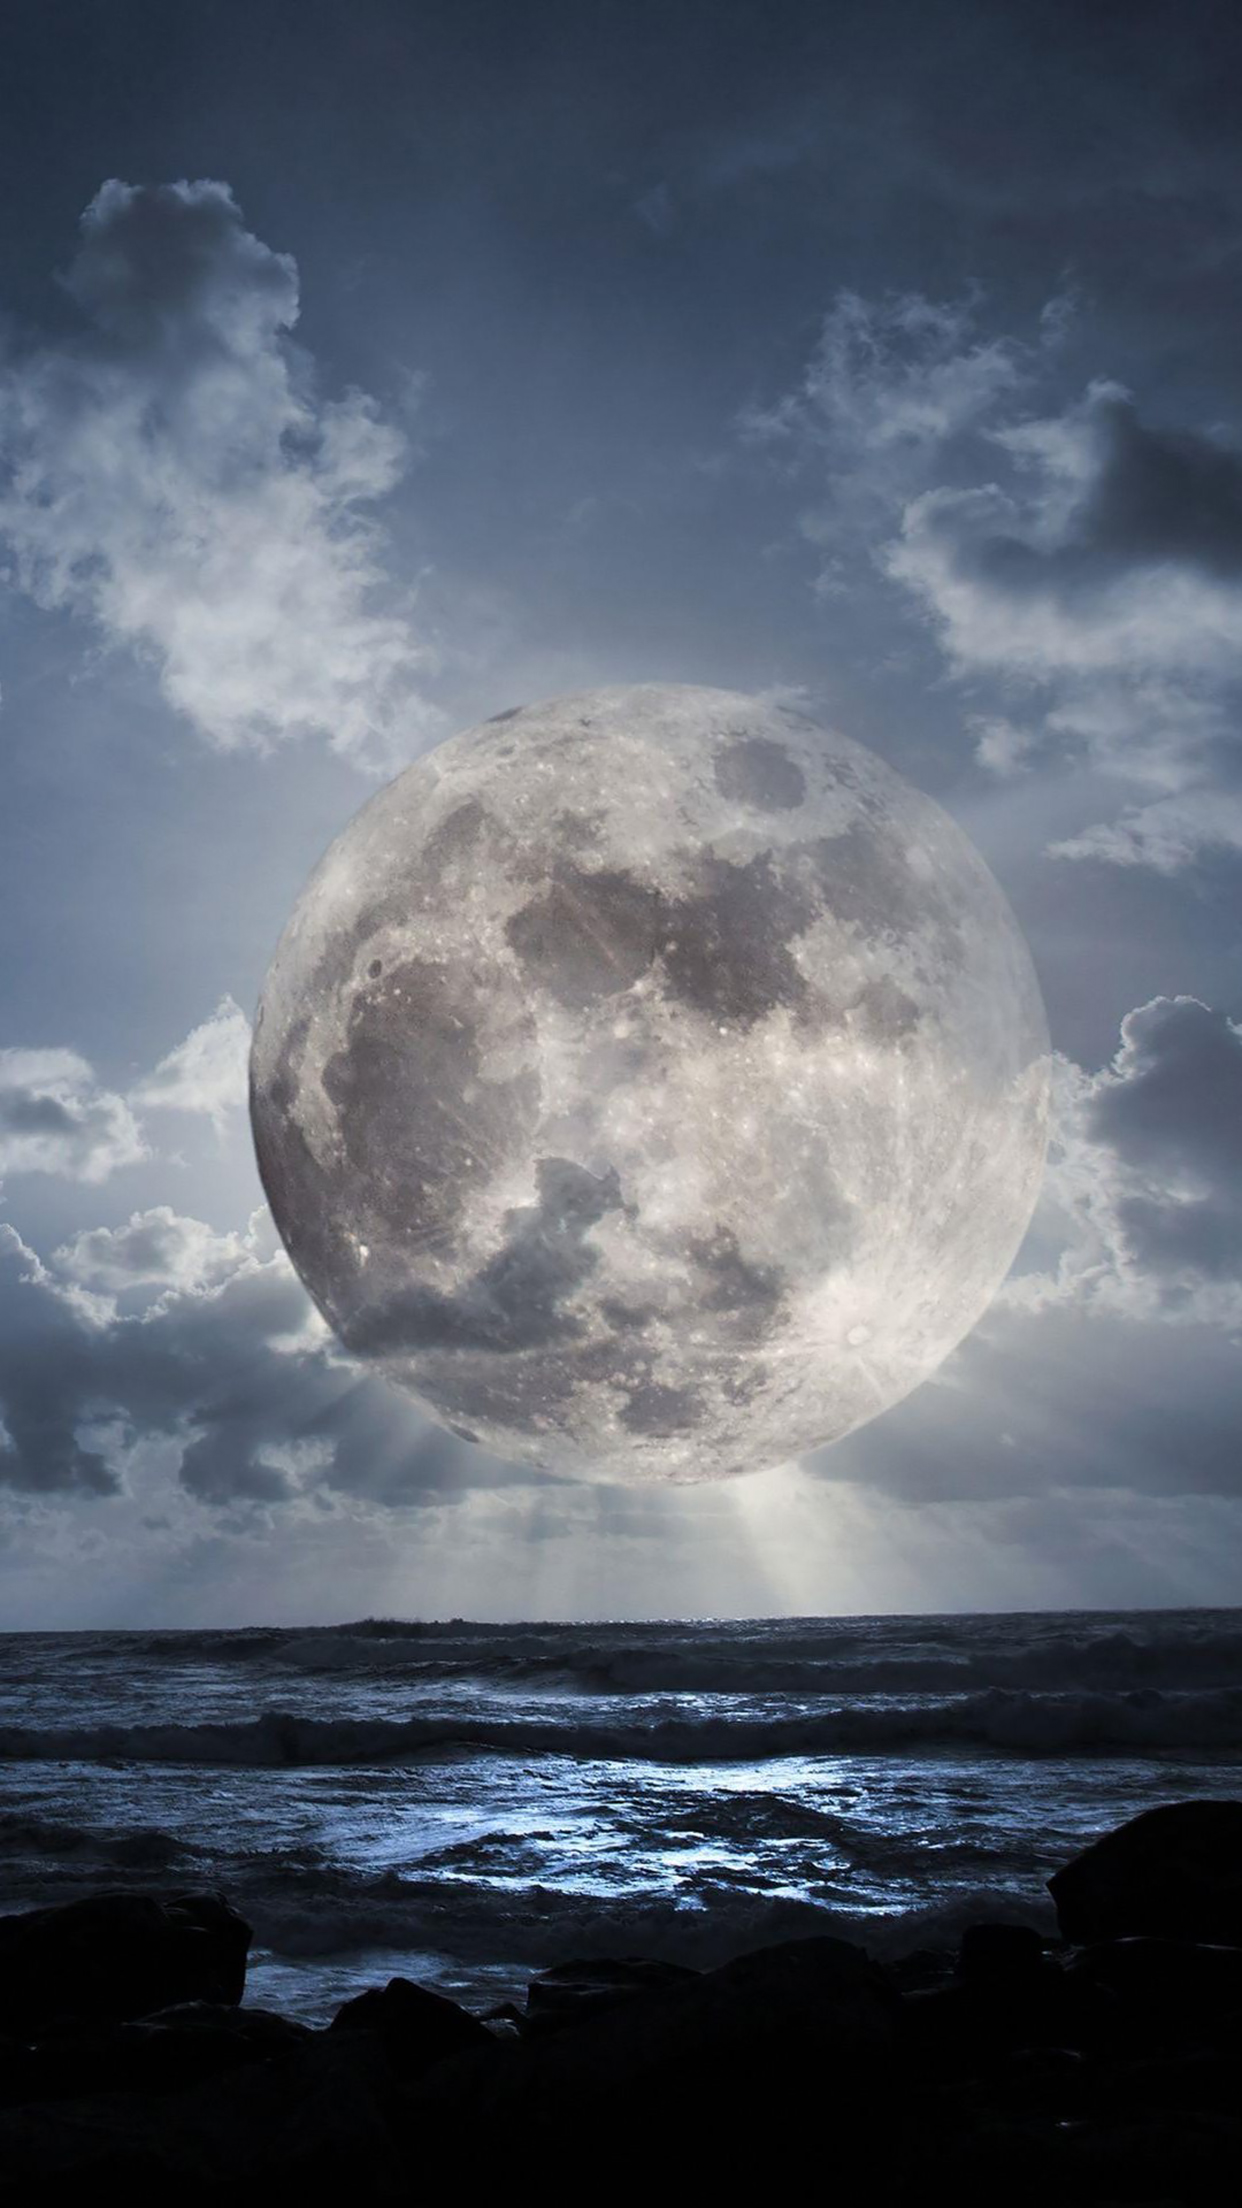 Science fiction moon over the sea 3Wallpapers iPhone Parallax Science fiction moon over the sea